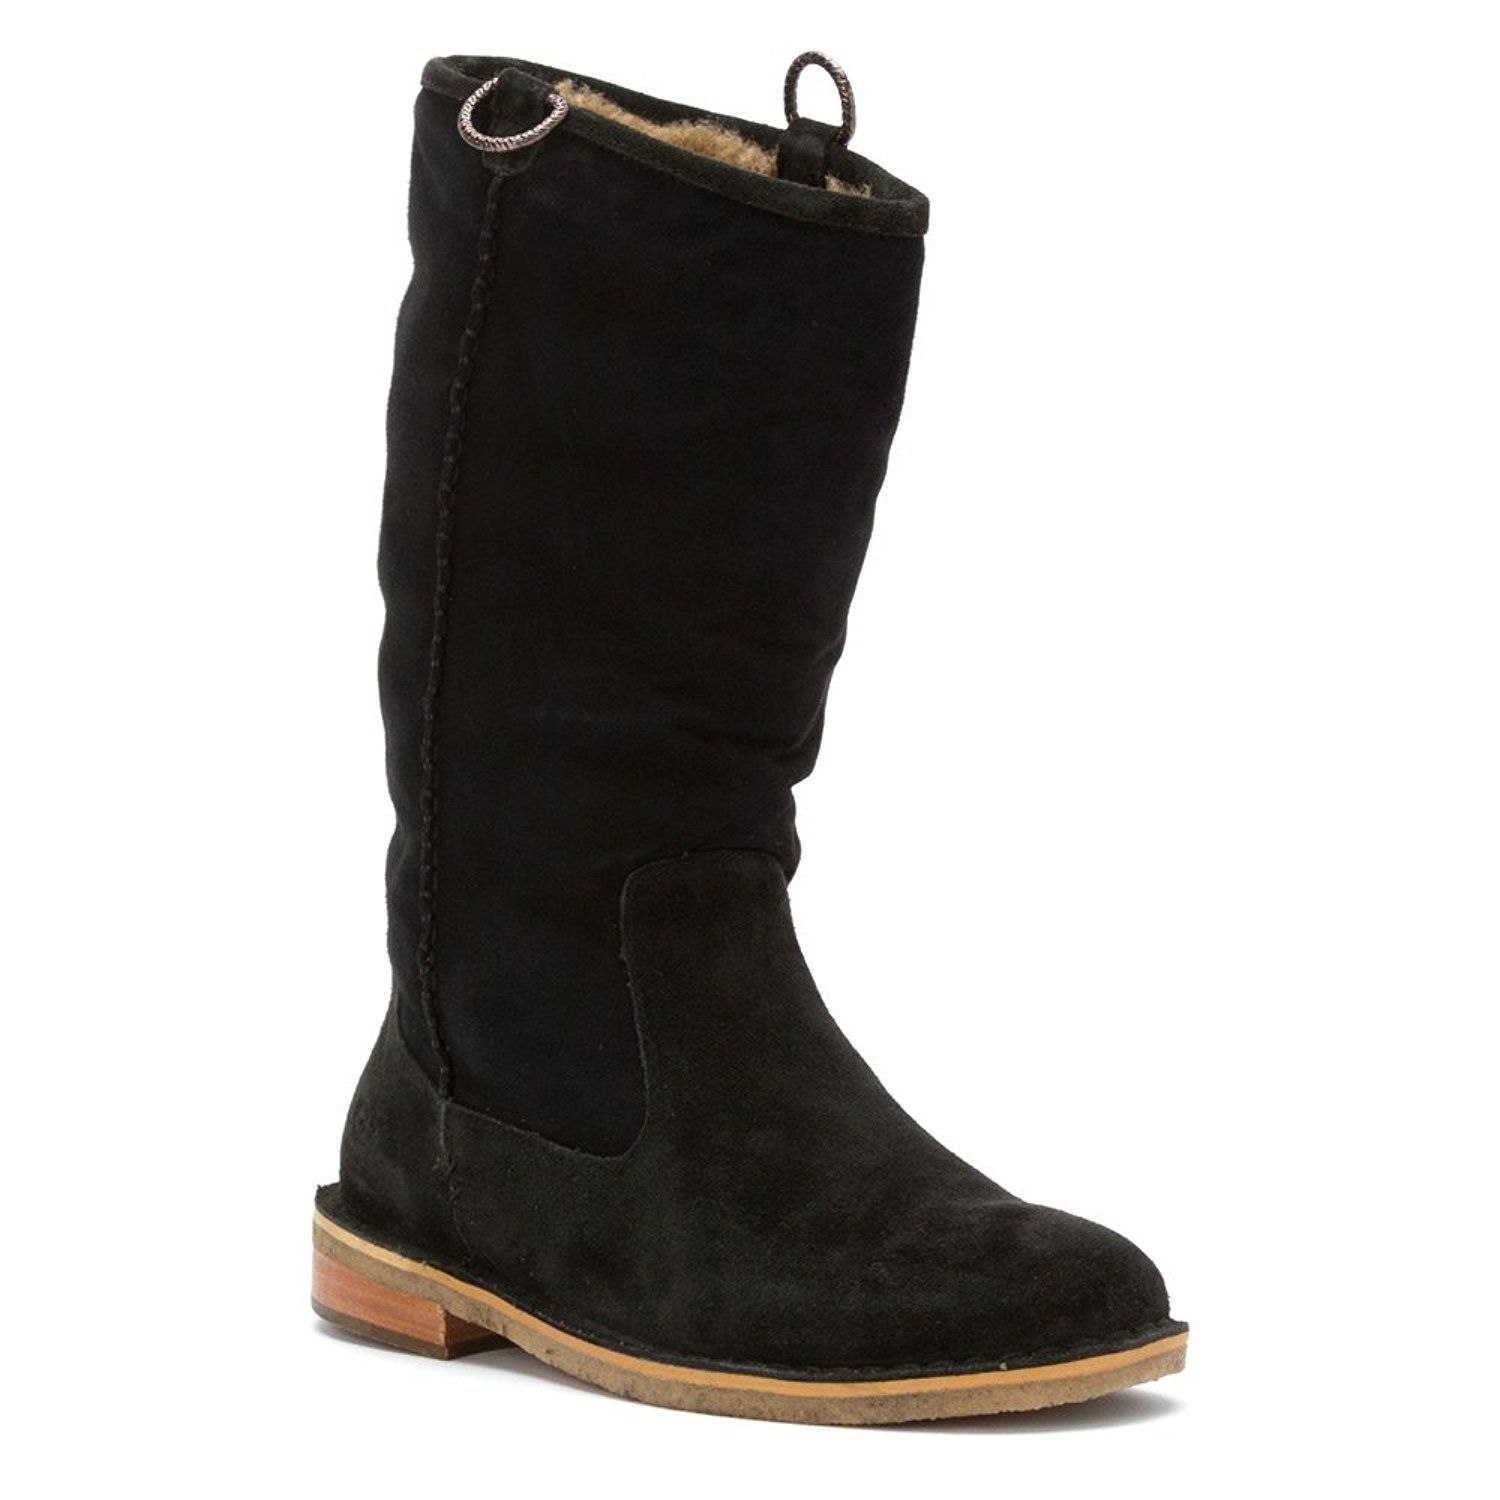 UGG Women's Daphne Black Suede Boot *** This is an Amazon Affiliate link.